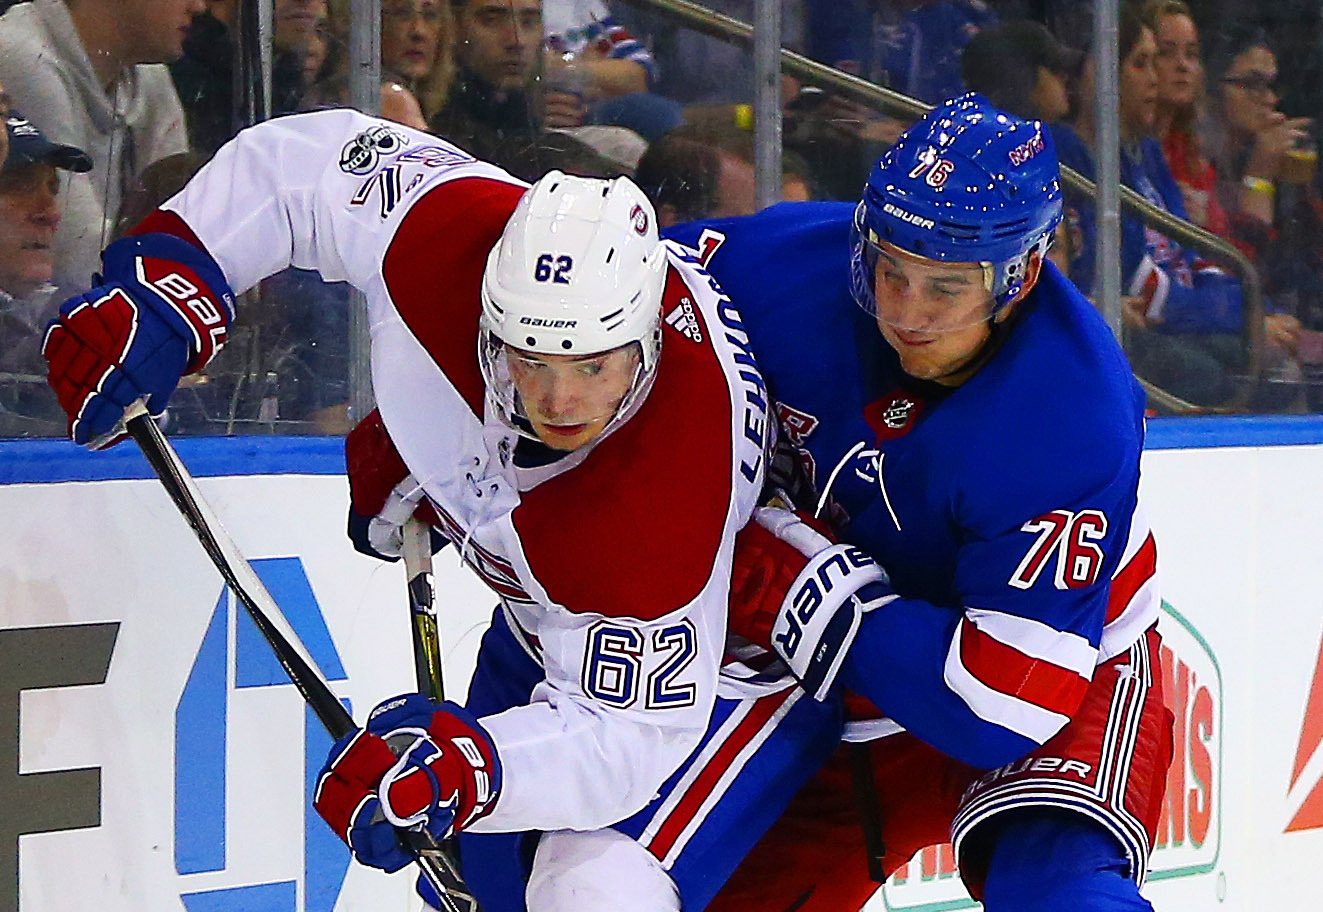 NHL: Montreal Canadiens at New York Rangers